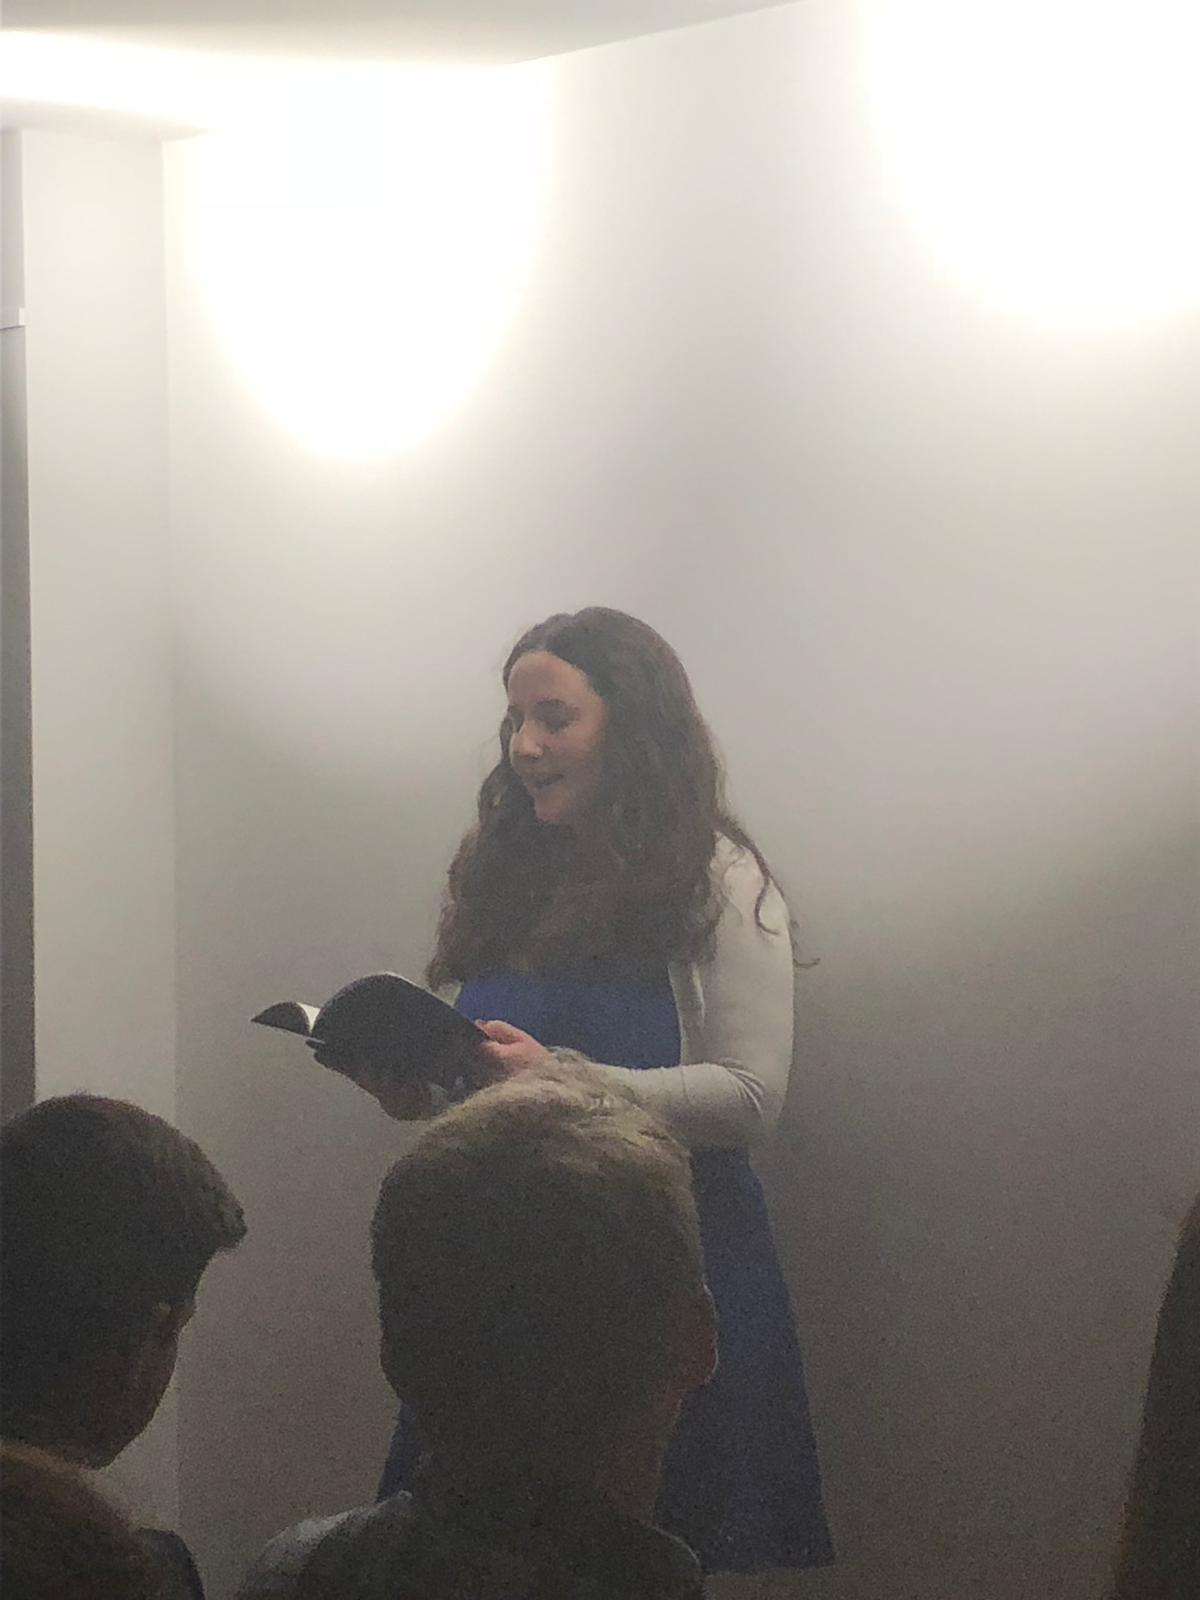 For a lot of our guests, this was their first poetry reading and the rousing applause at the end suggested they'll be heading back to us and  The Poetry Cafe  for more!